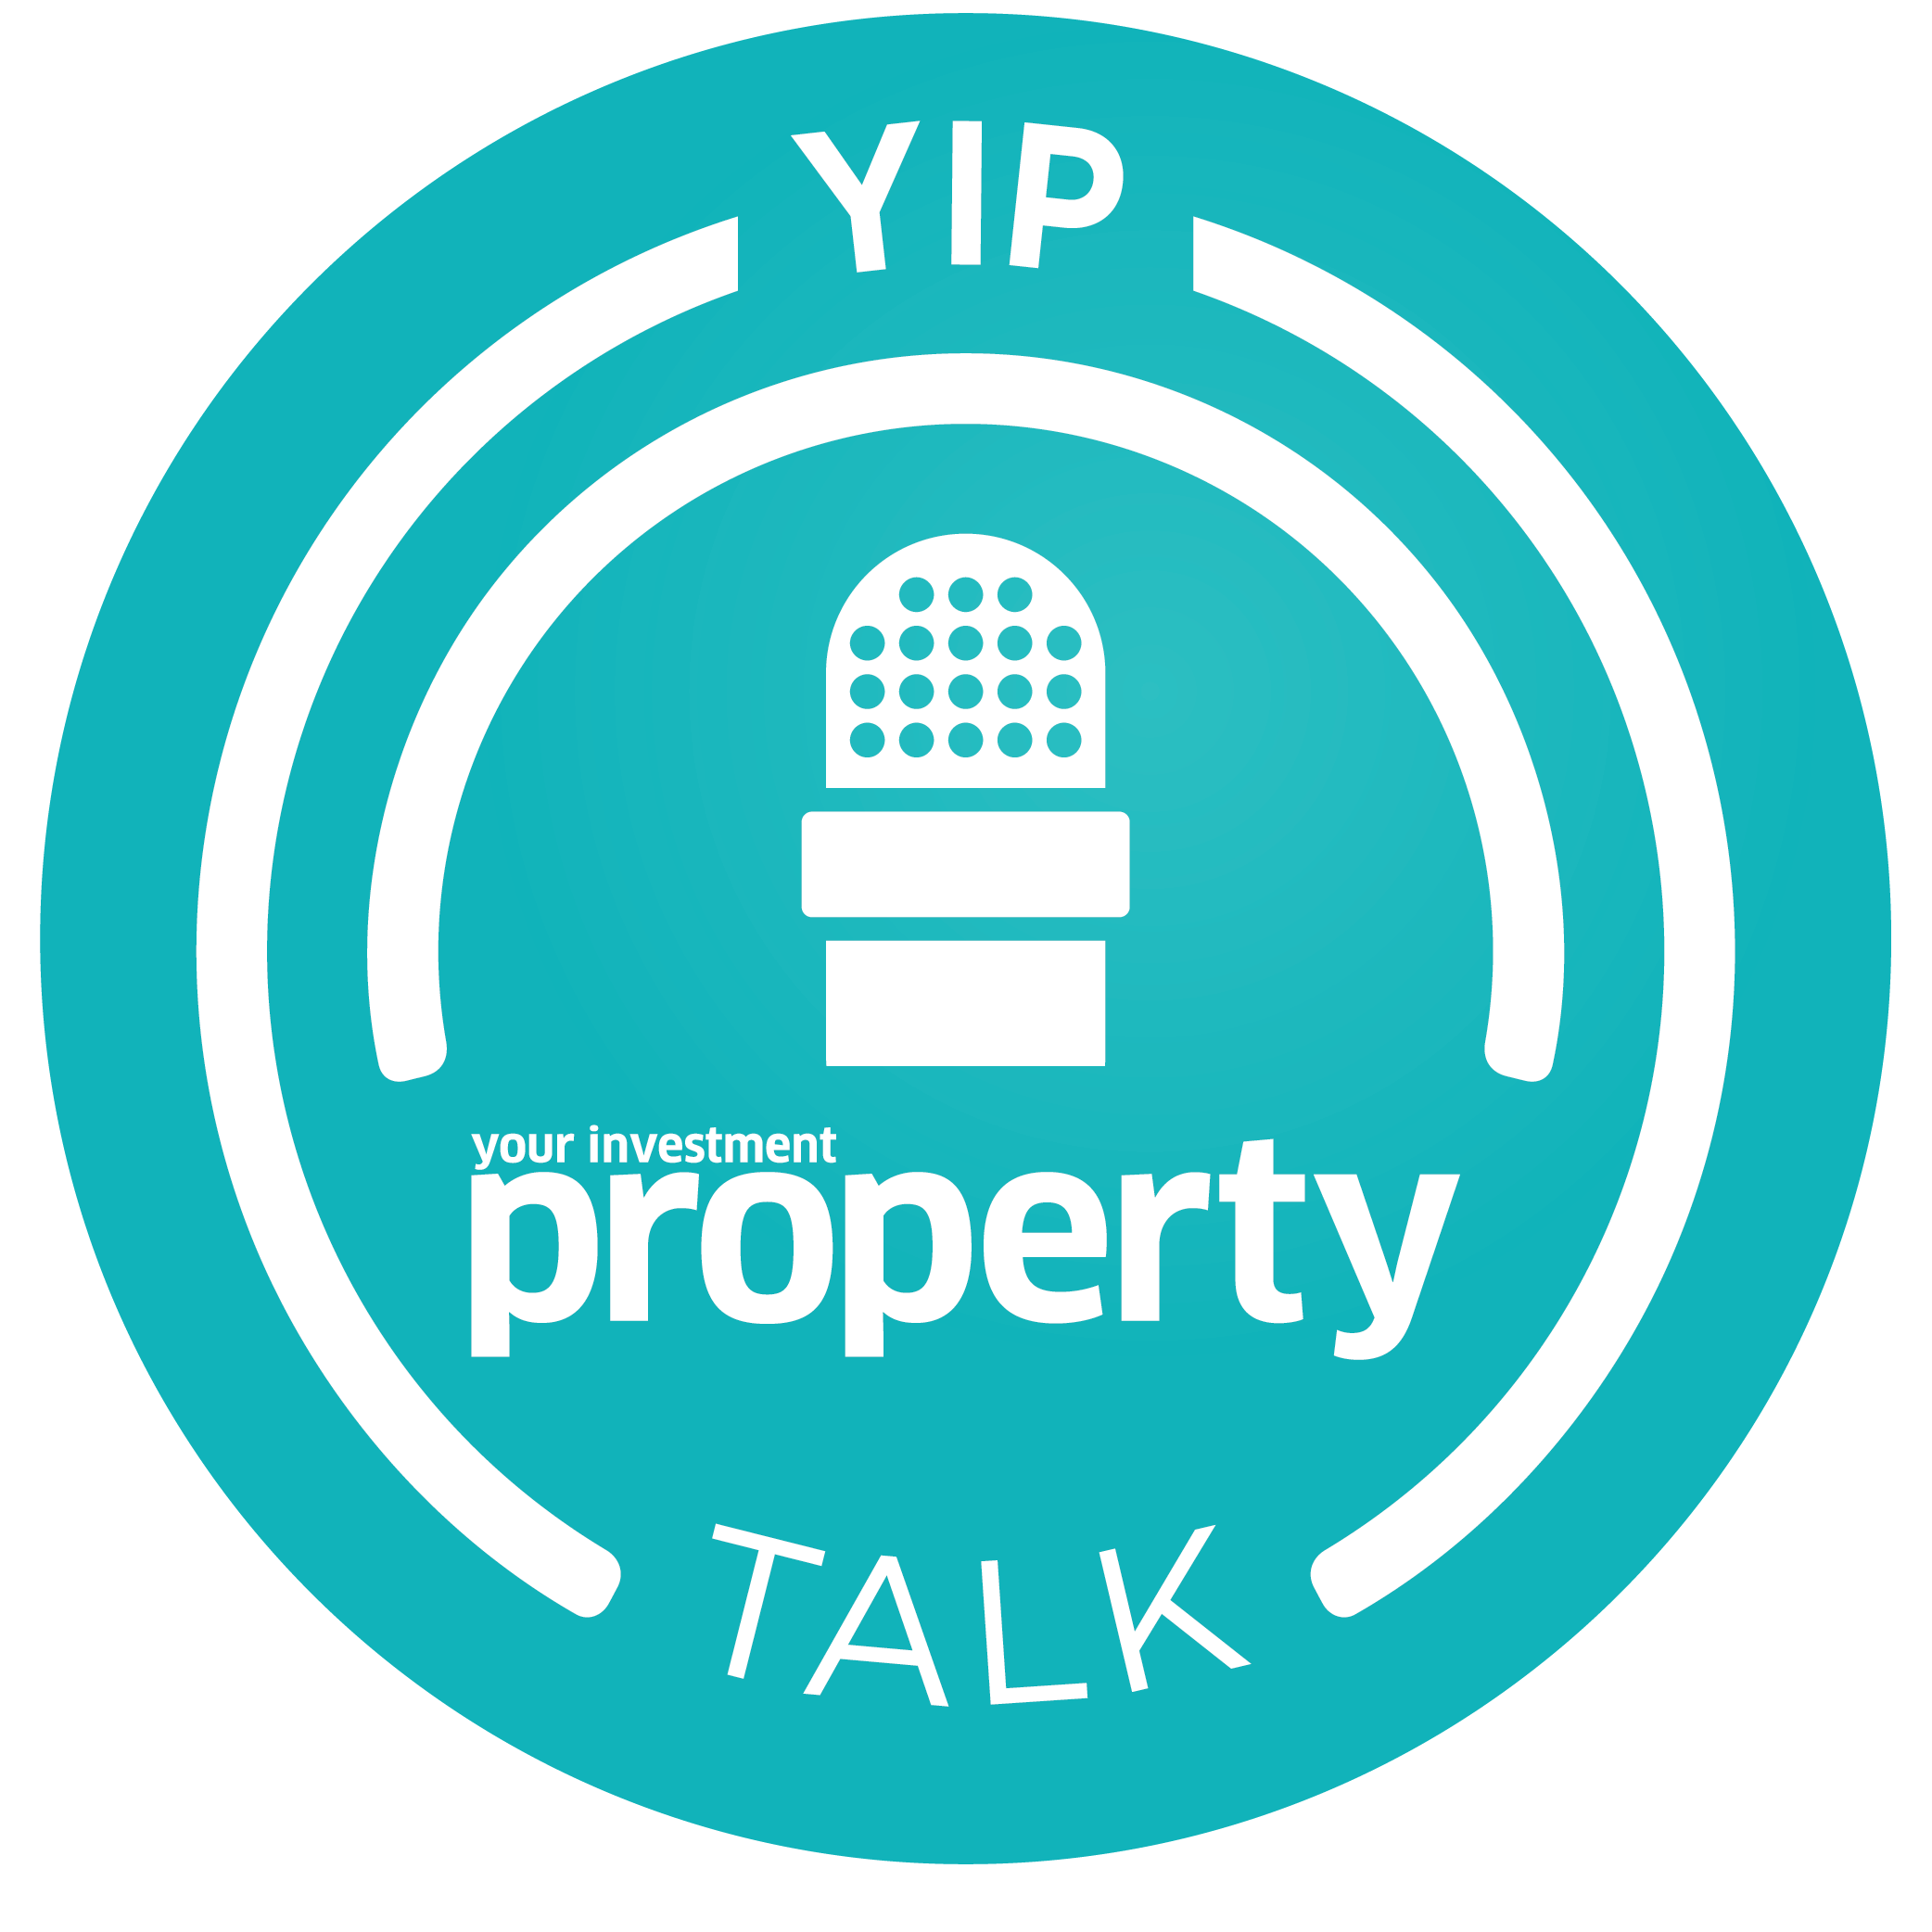 Episode 8 - Oct 2019 - How to uncover profitable deals in commercial property